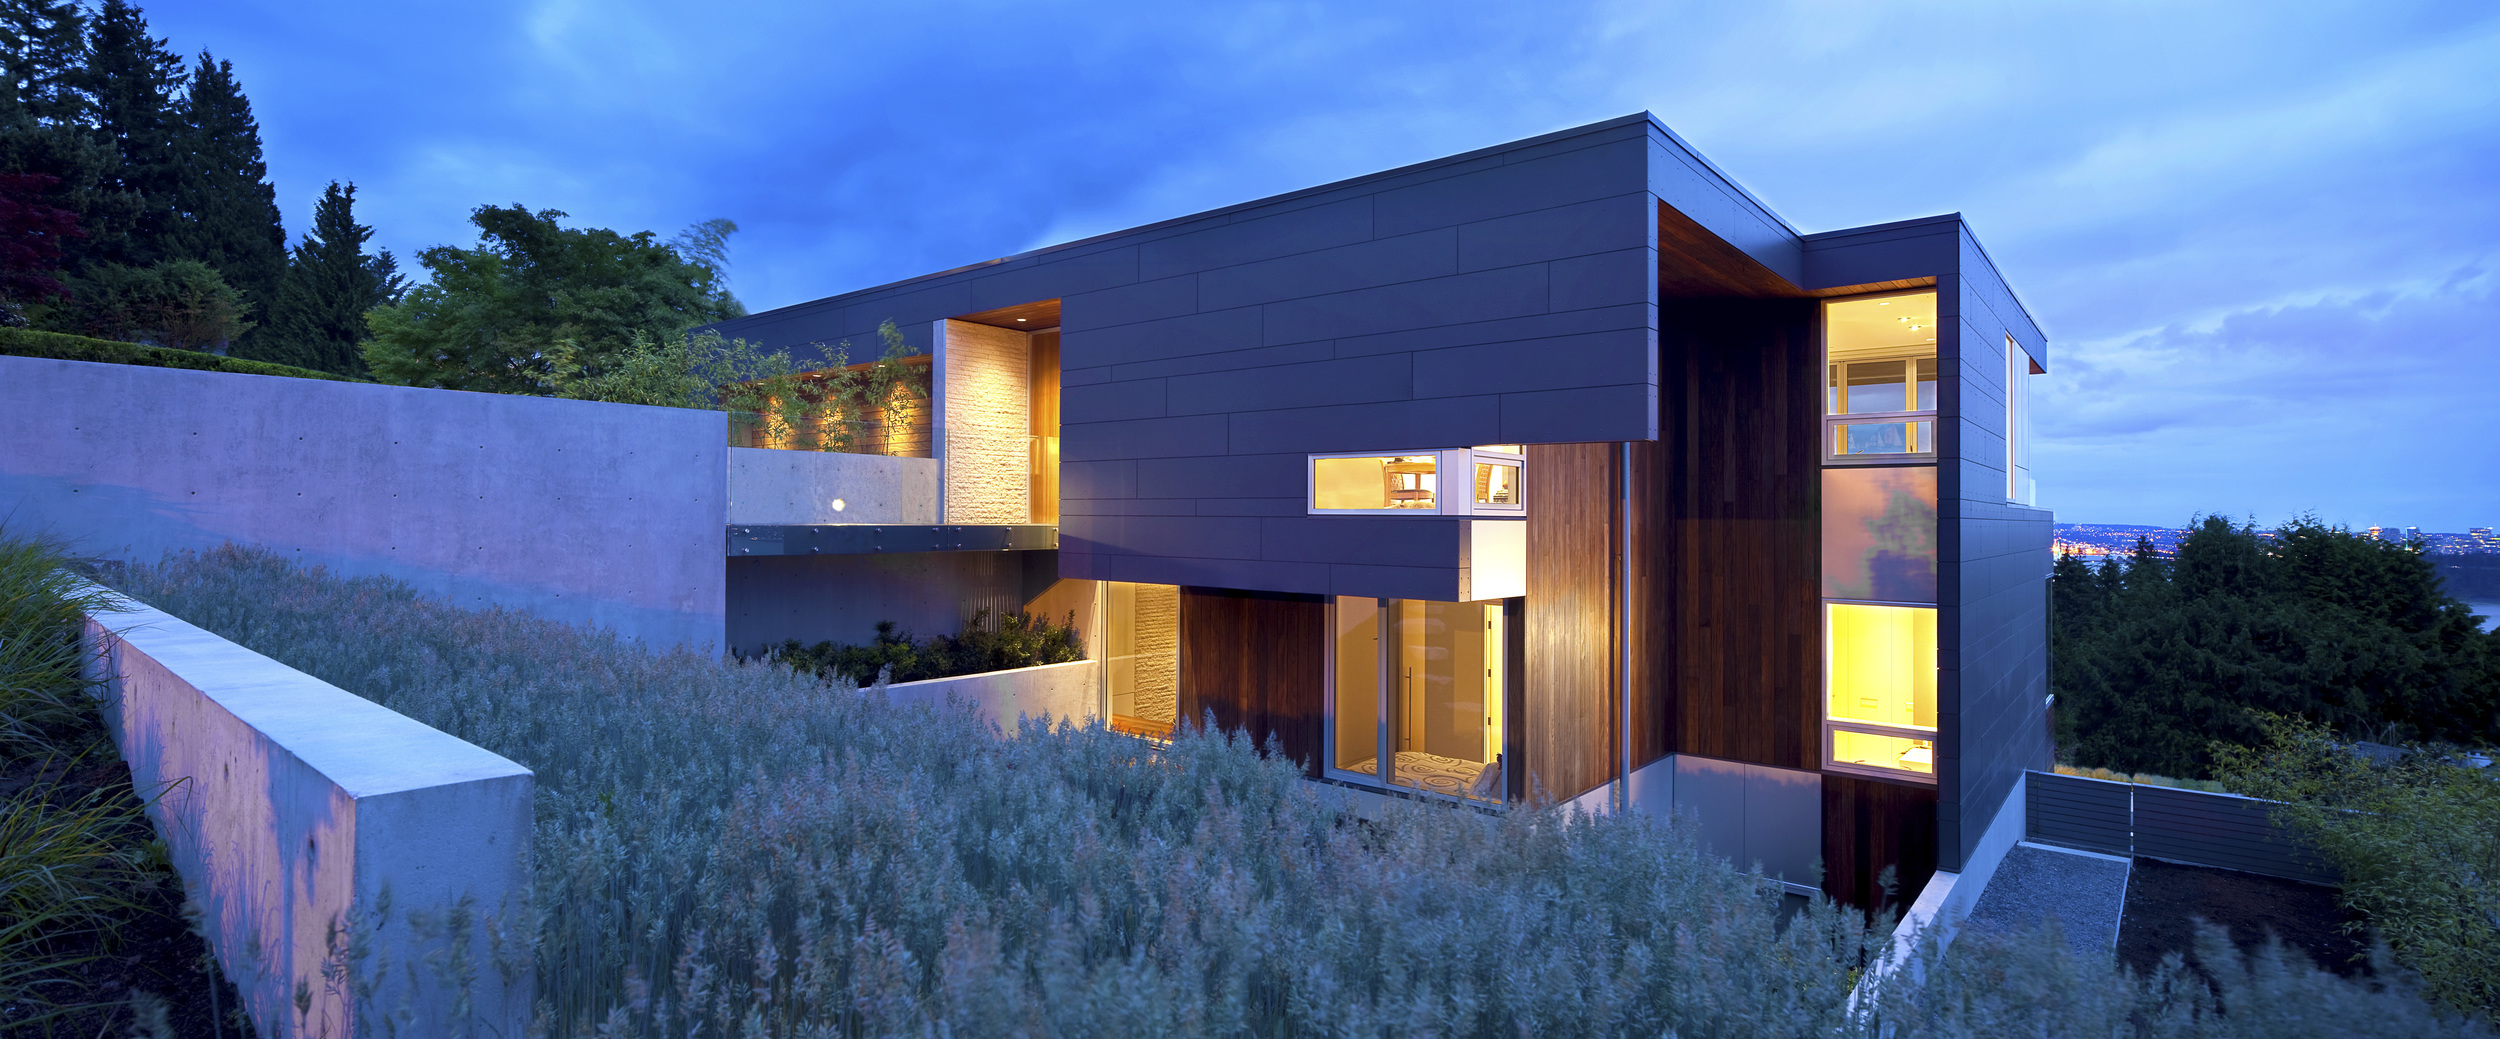 orchard house - Modern Houses Images